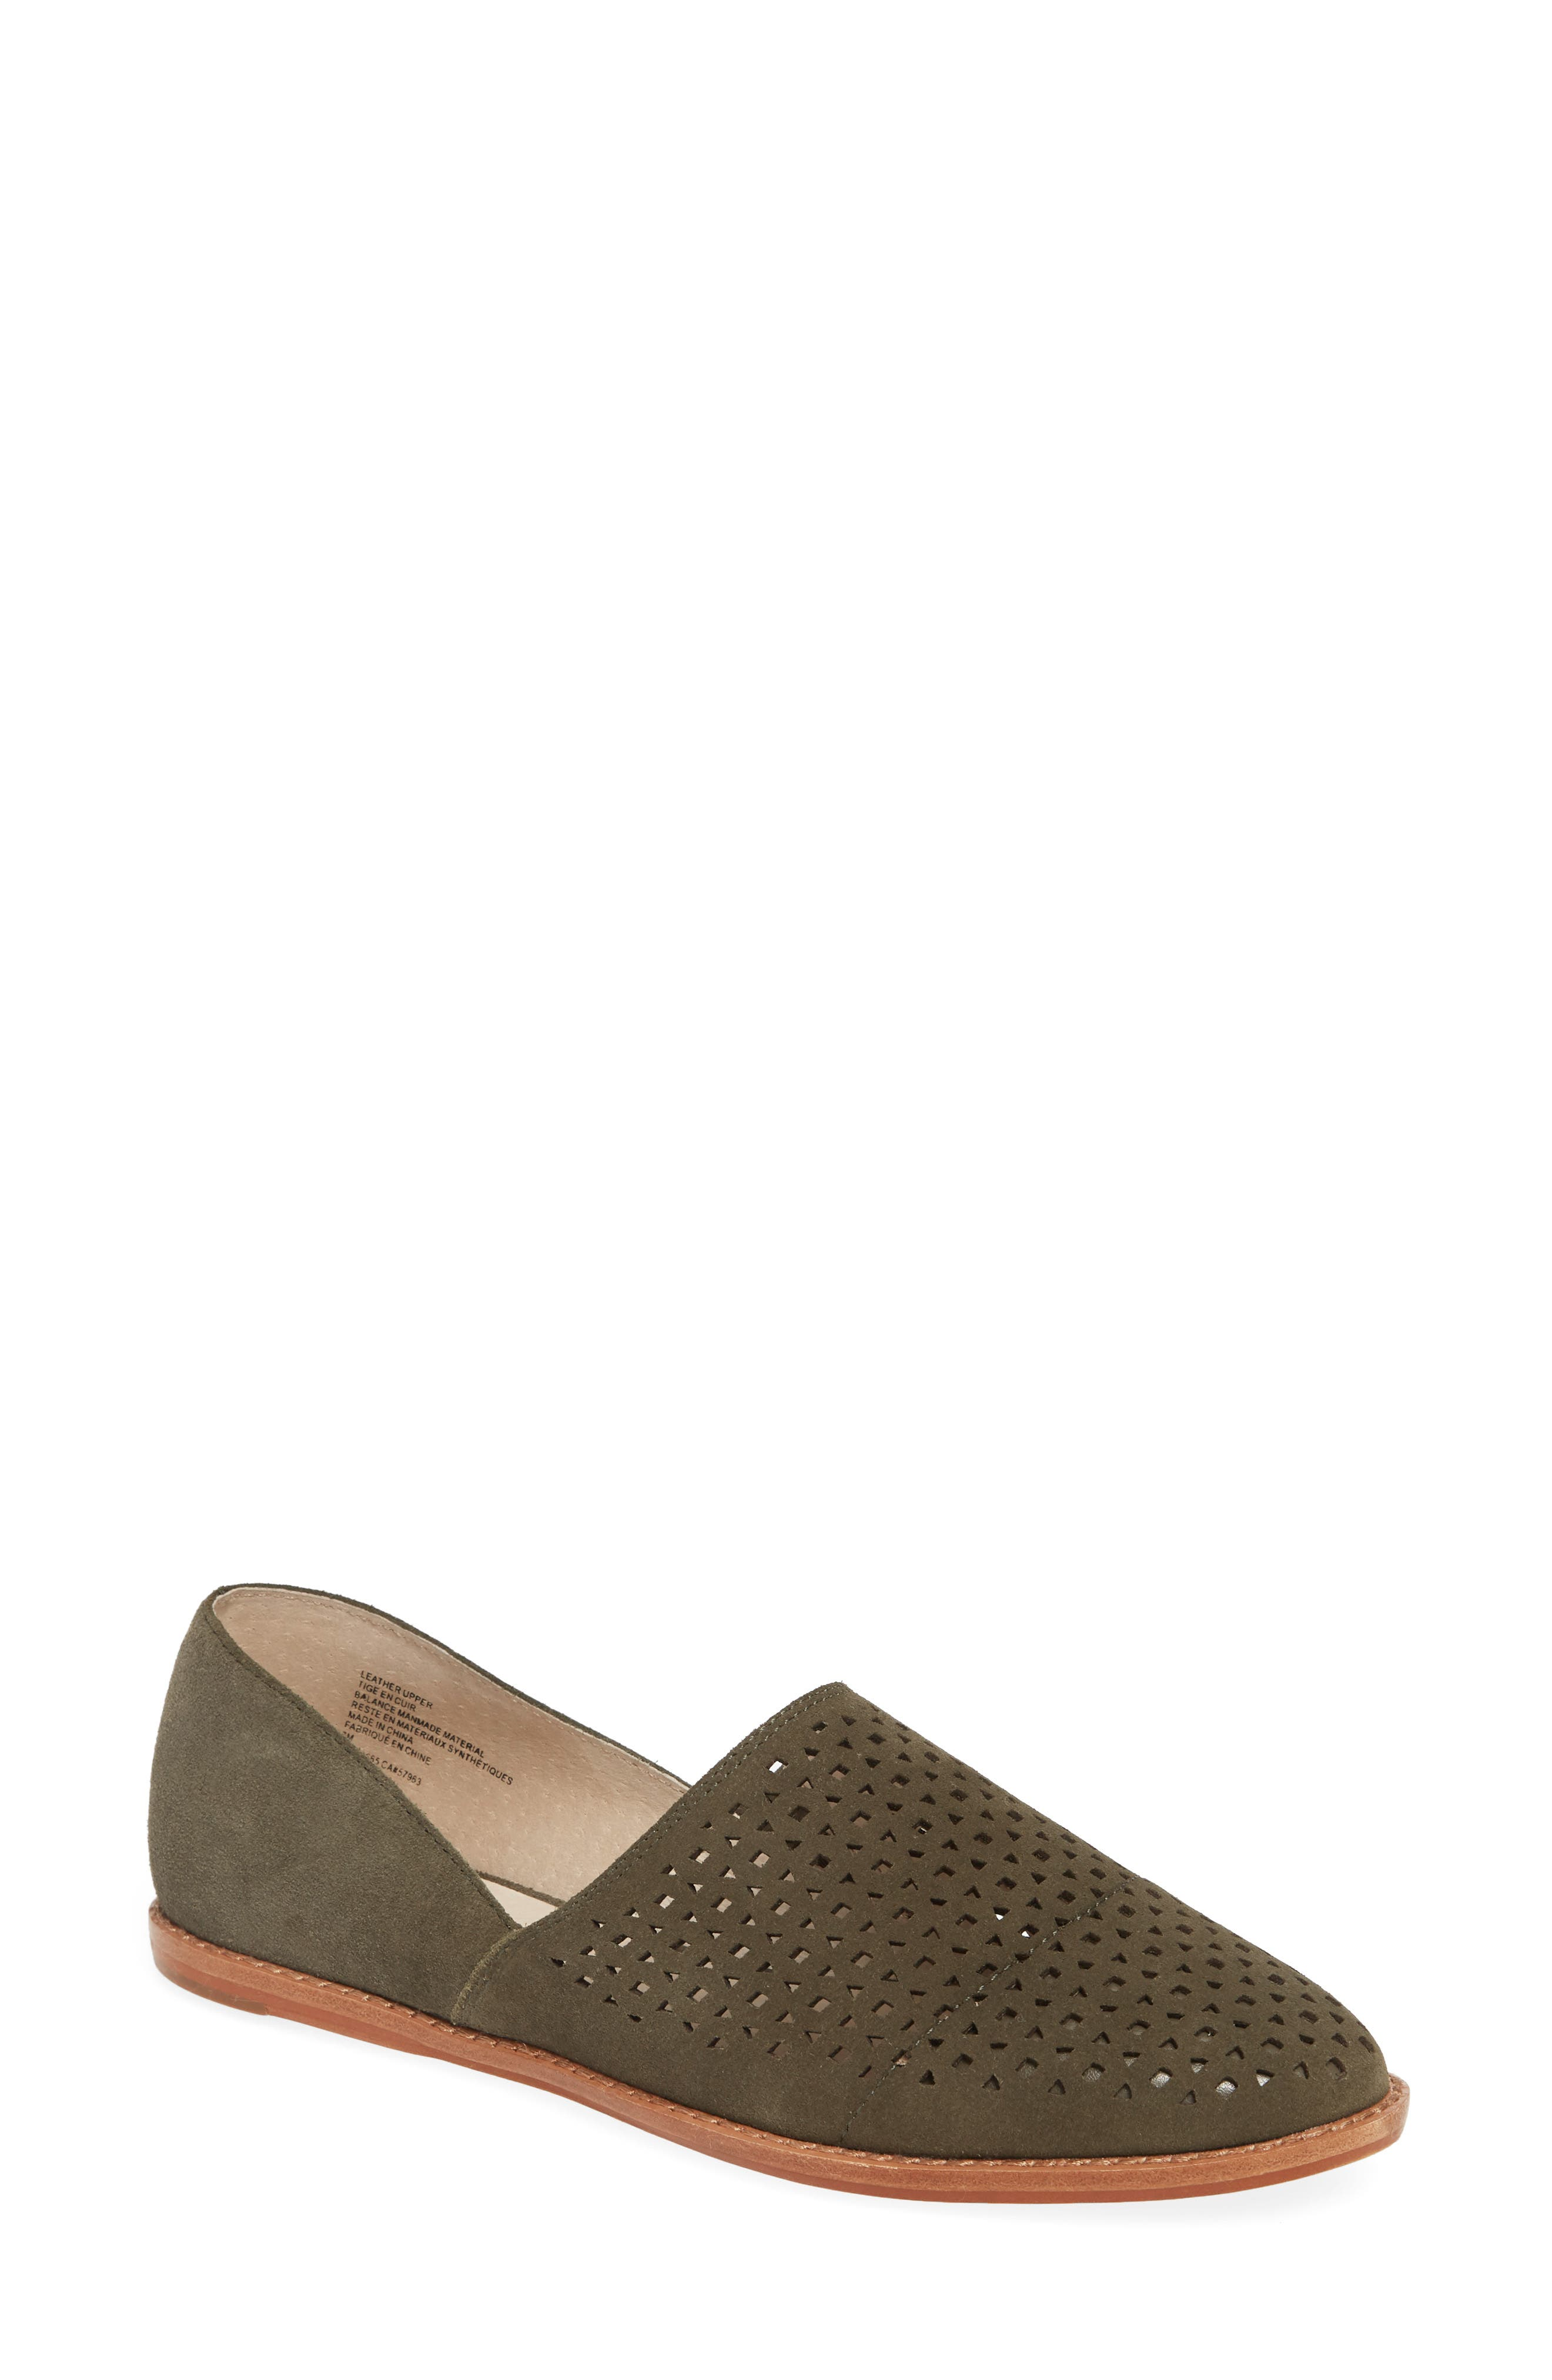 Caslon Adrian Perforated Flat, Green